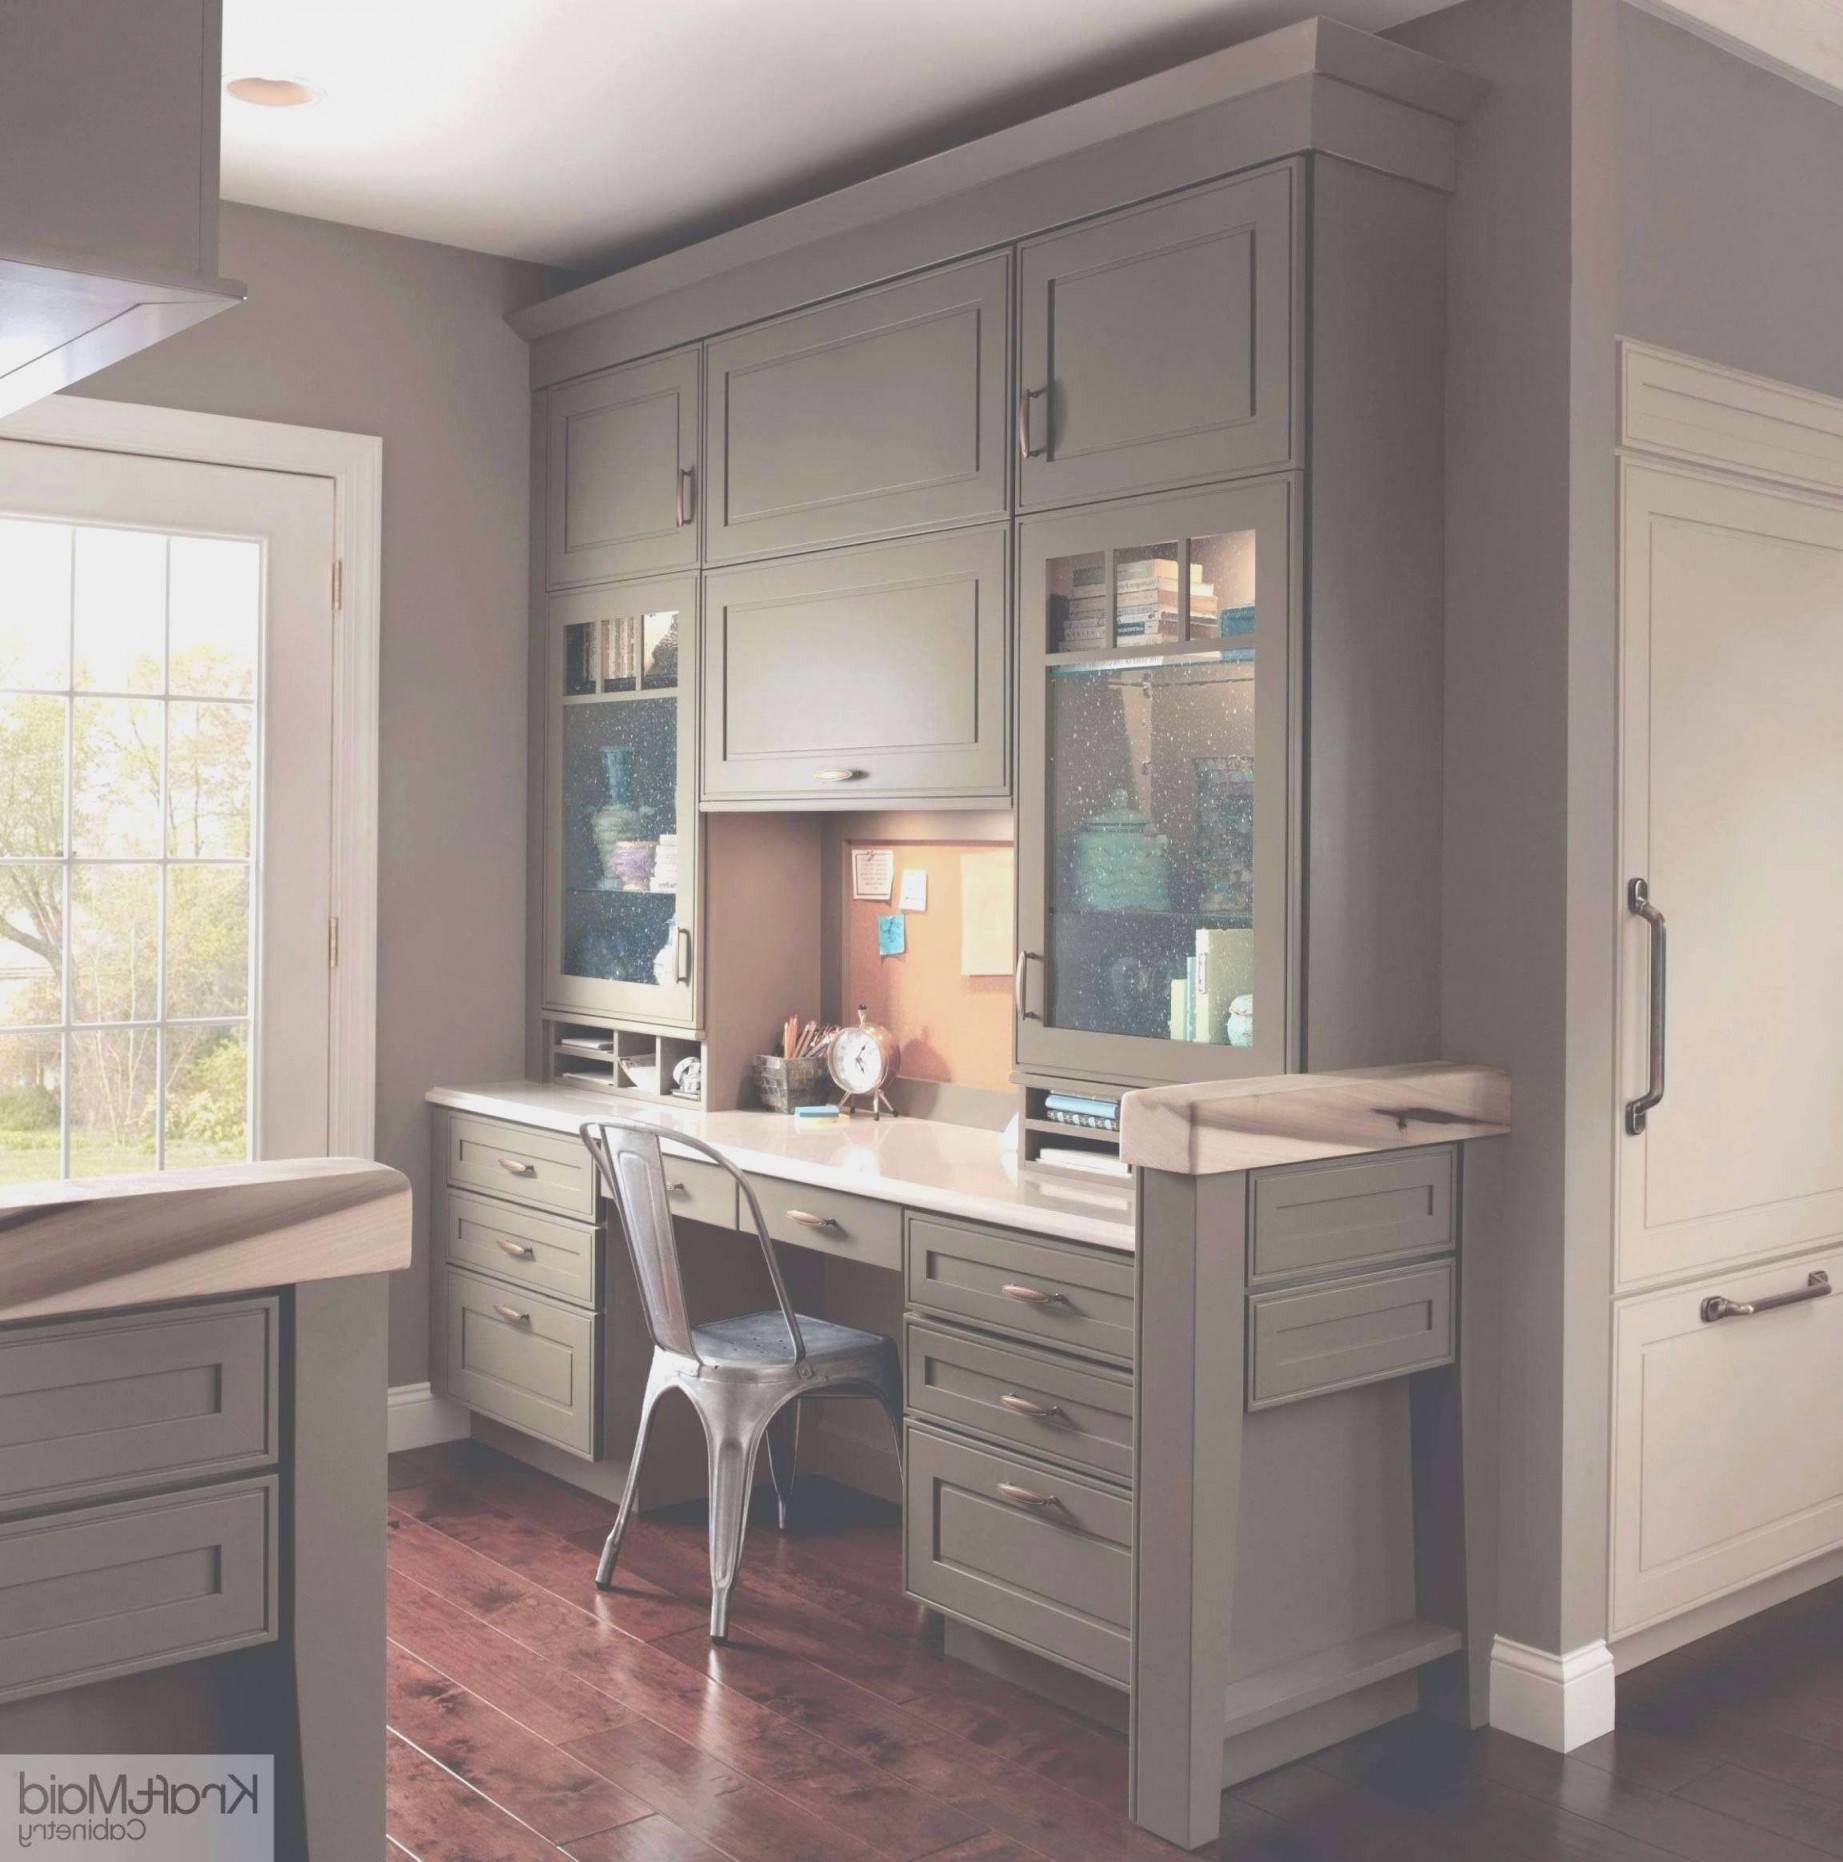 storage cabinet kitchen pantry lovely 24 kitchen pantry cabinet norwin home design of storage cabinet kitchen pantry